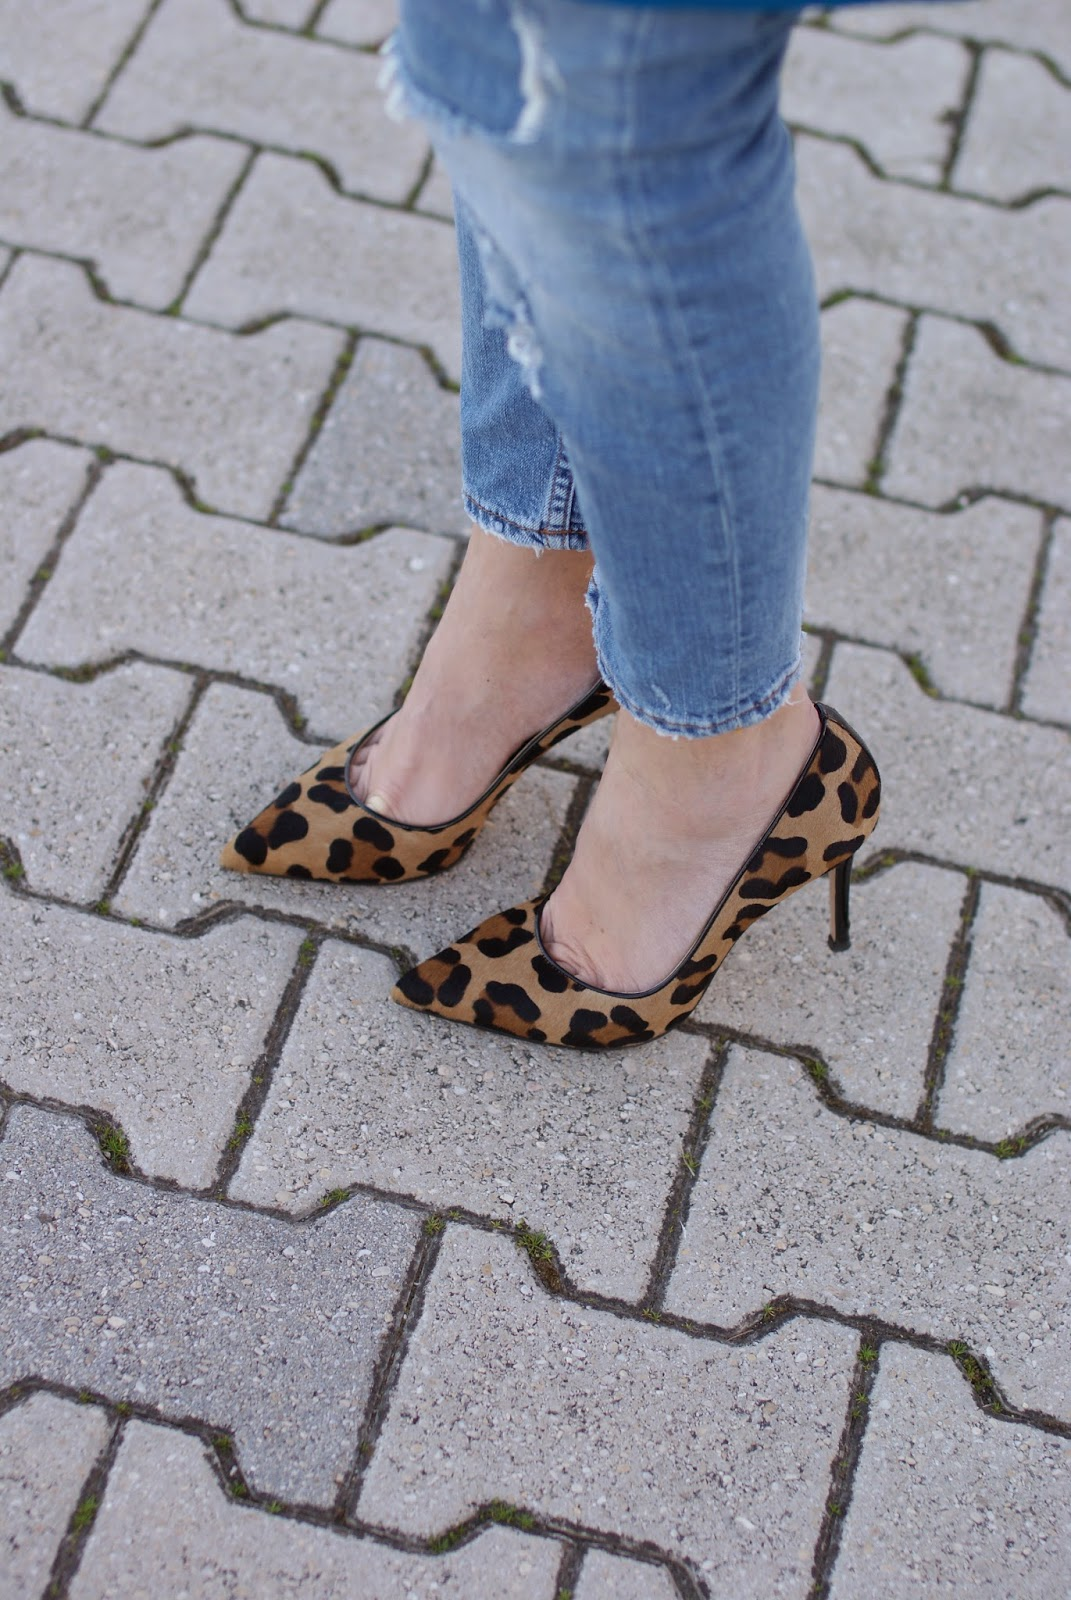 Gianni Marra scarpe leopardate, pony hair leopard pumps, Fashion and Cookies, fashion blogger